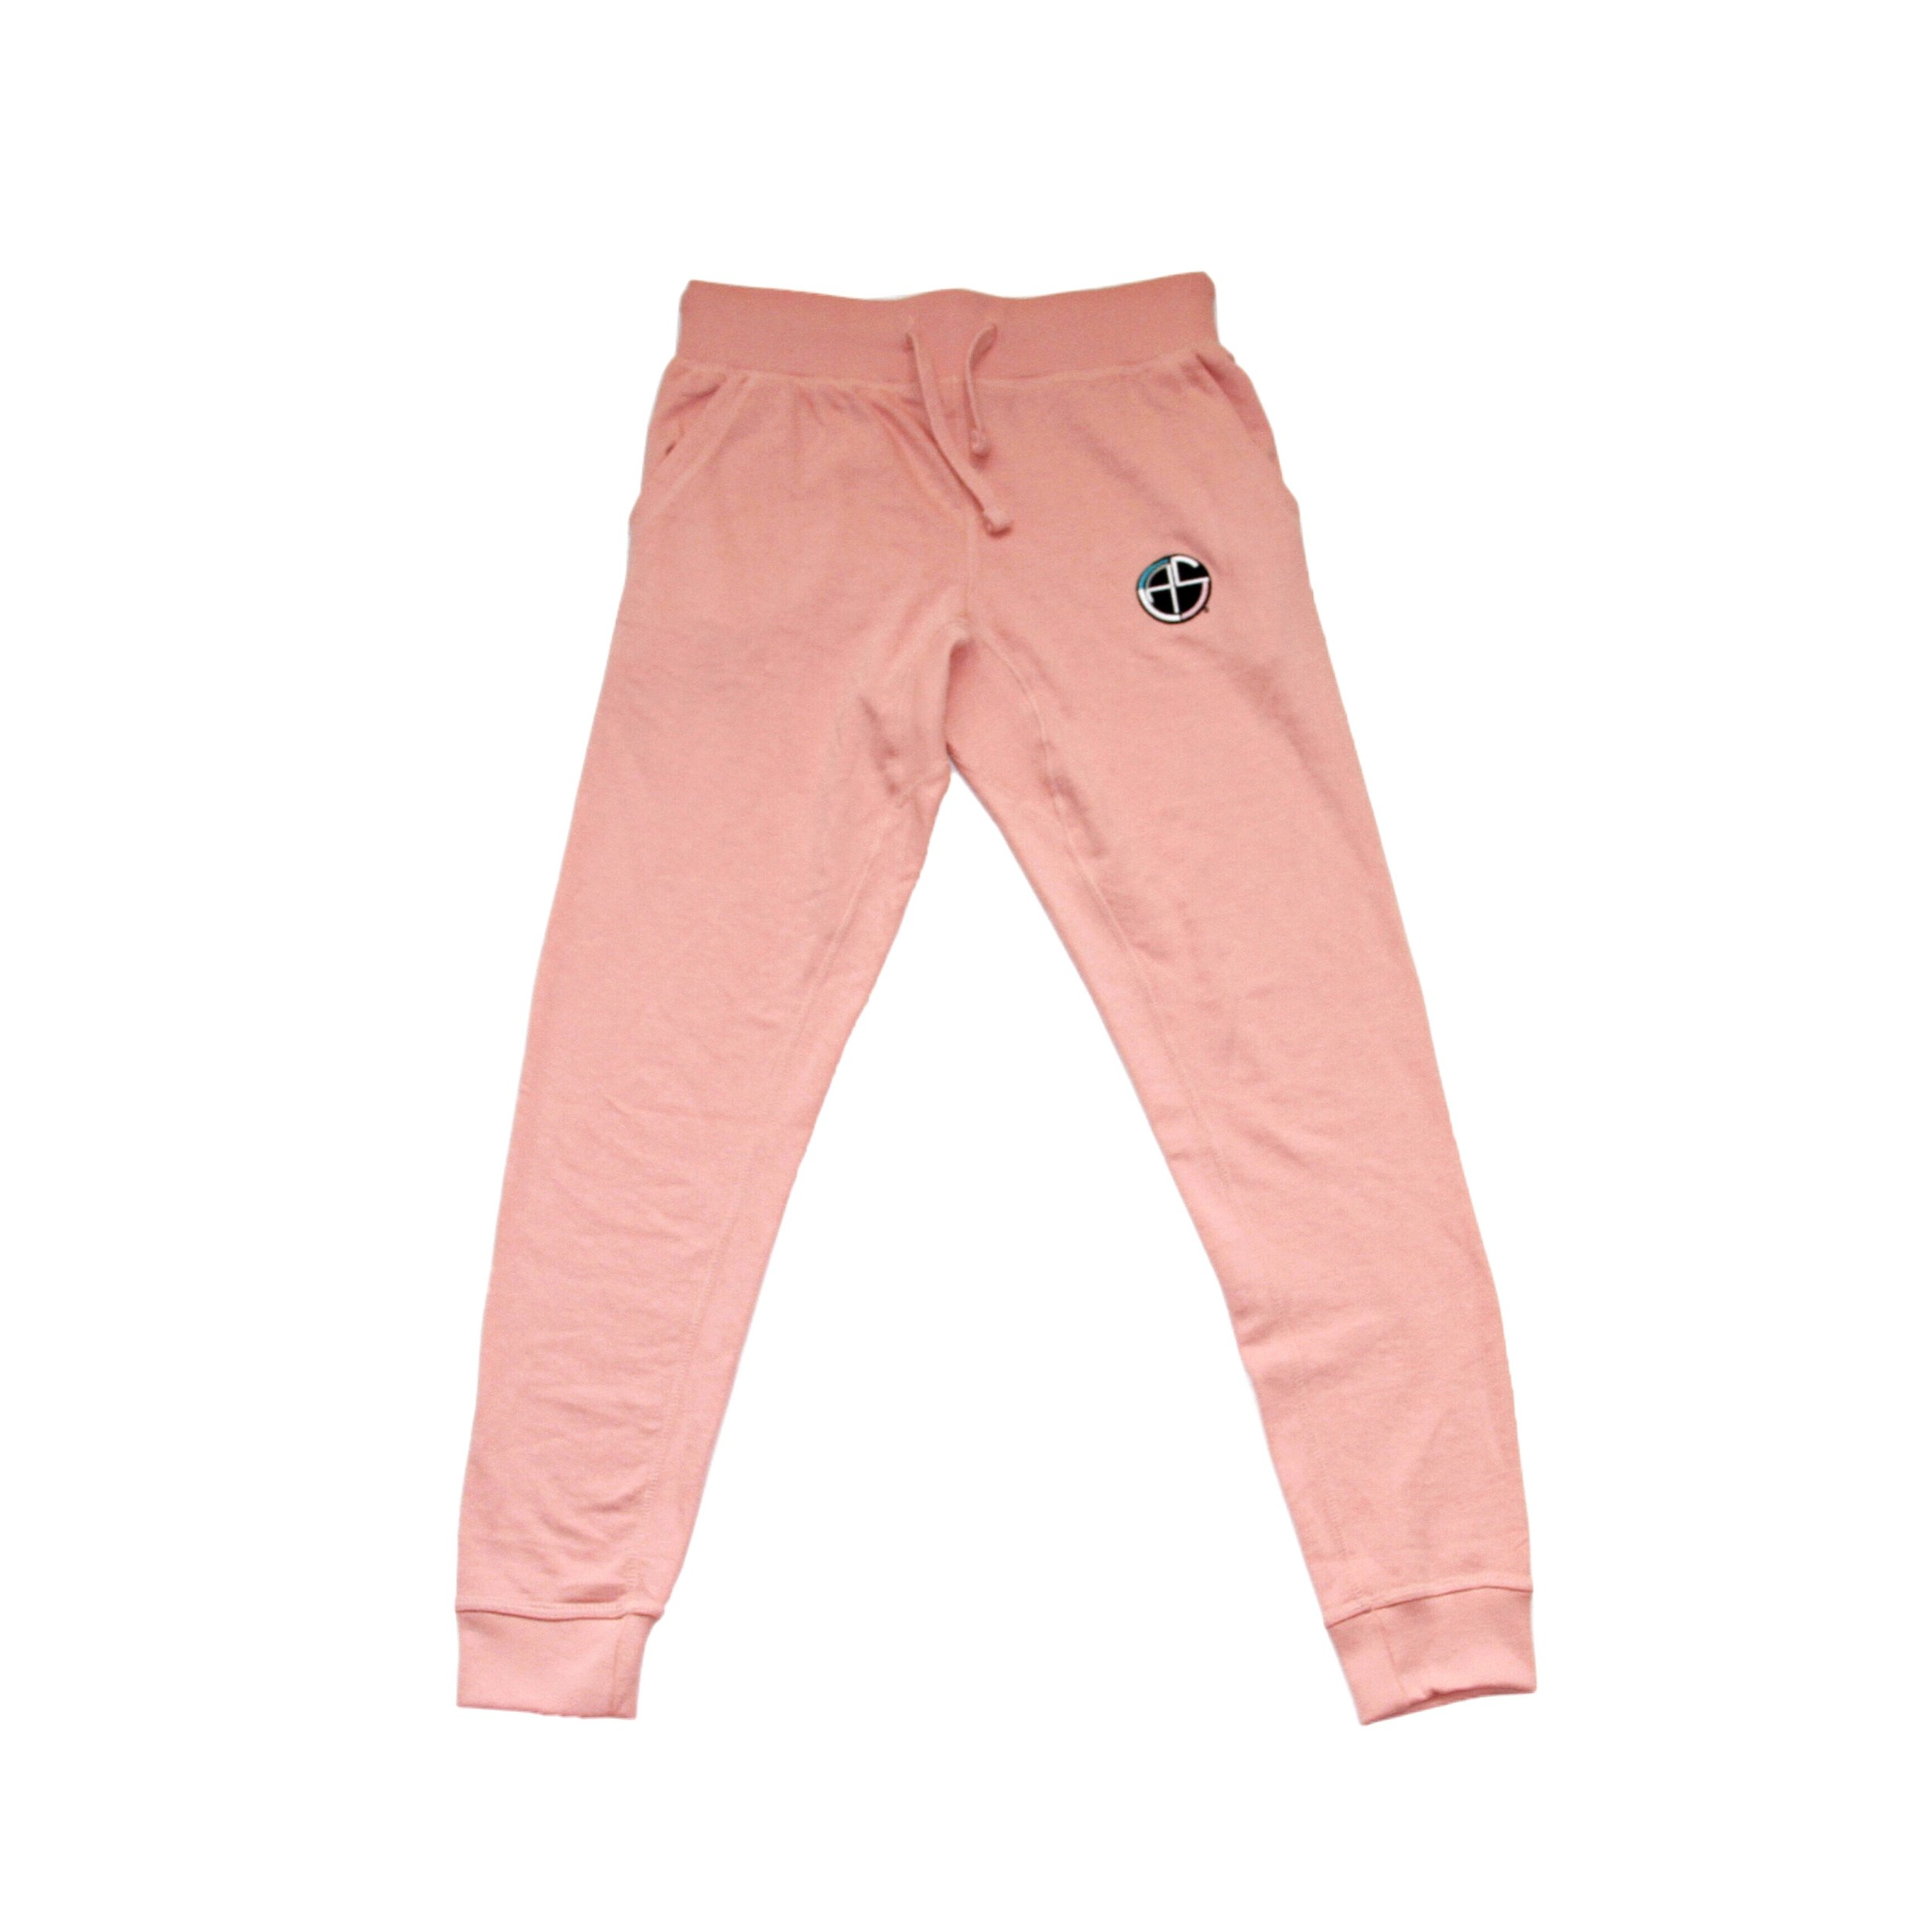 C.A.S. pink Joggers -